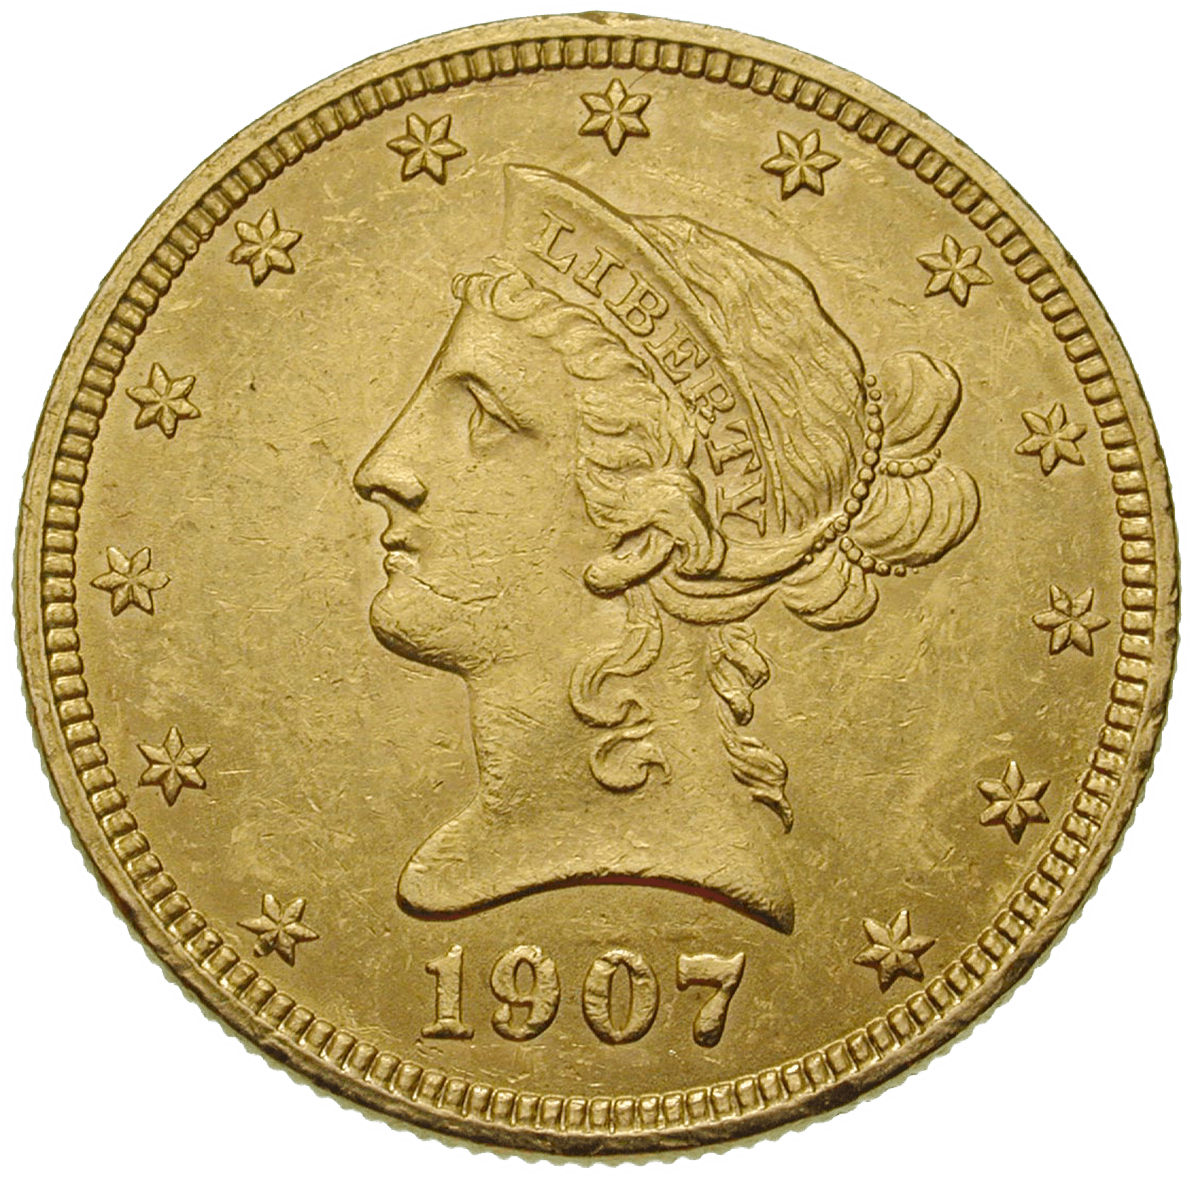 United States of America, 10 Dollars 1907 (obverse)